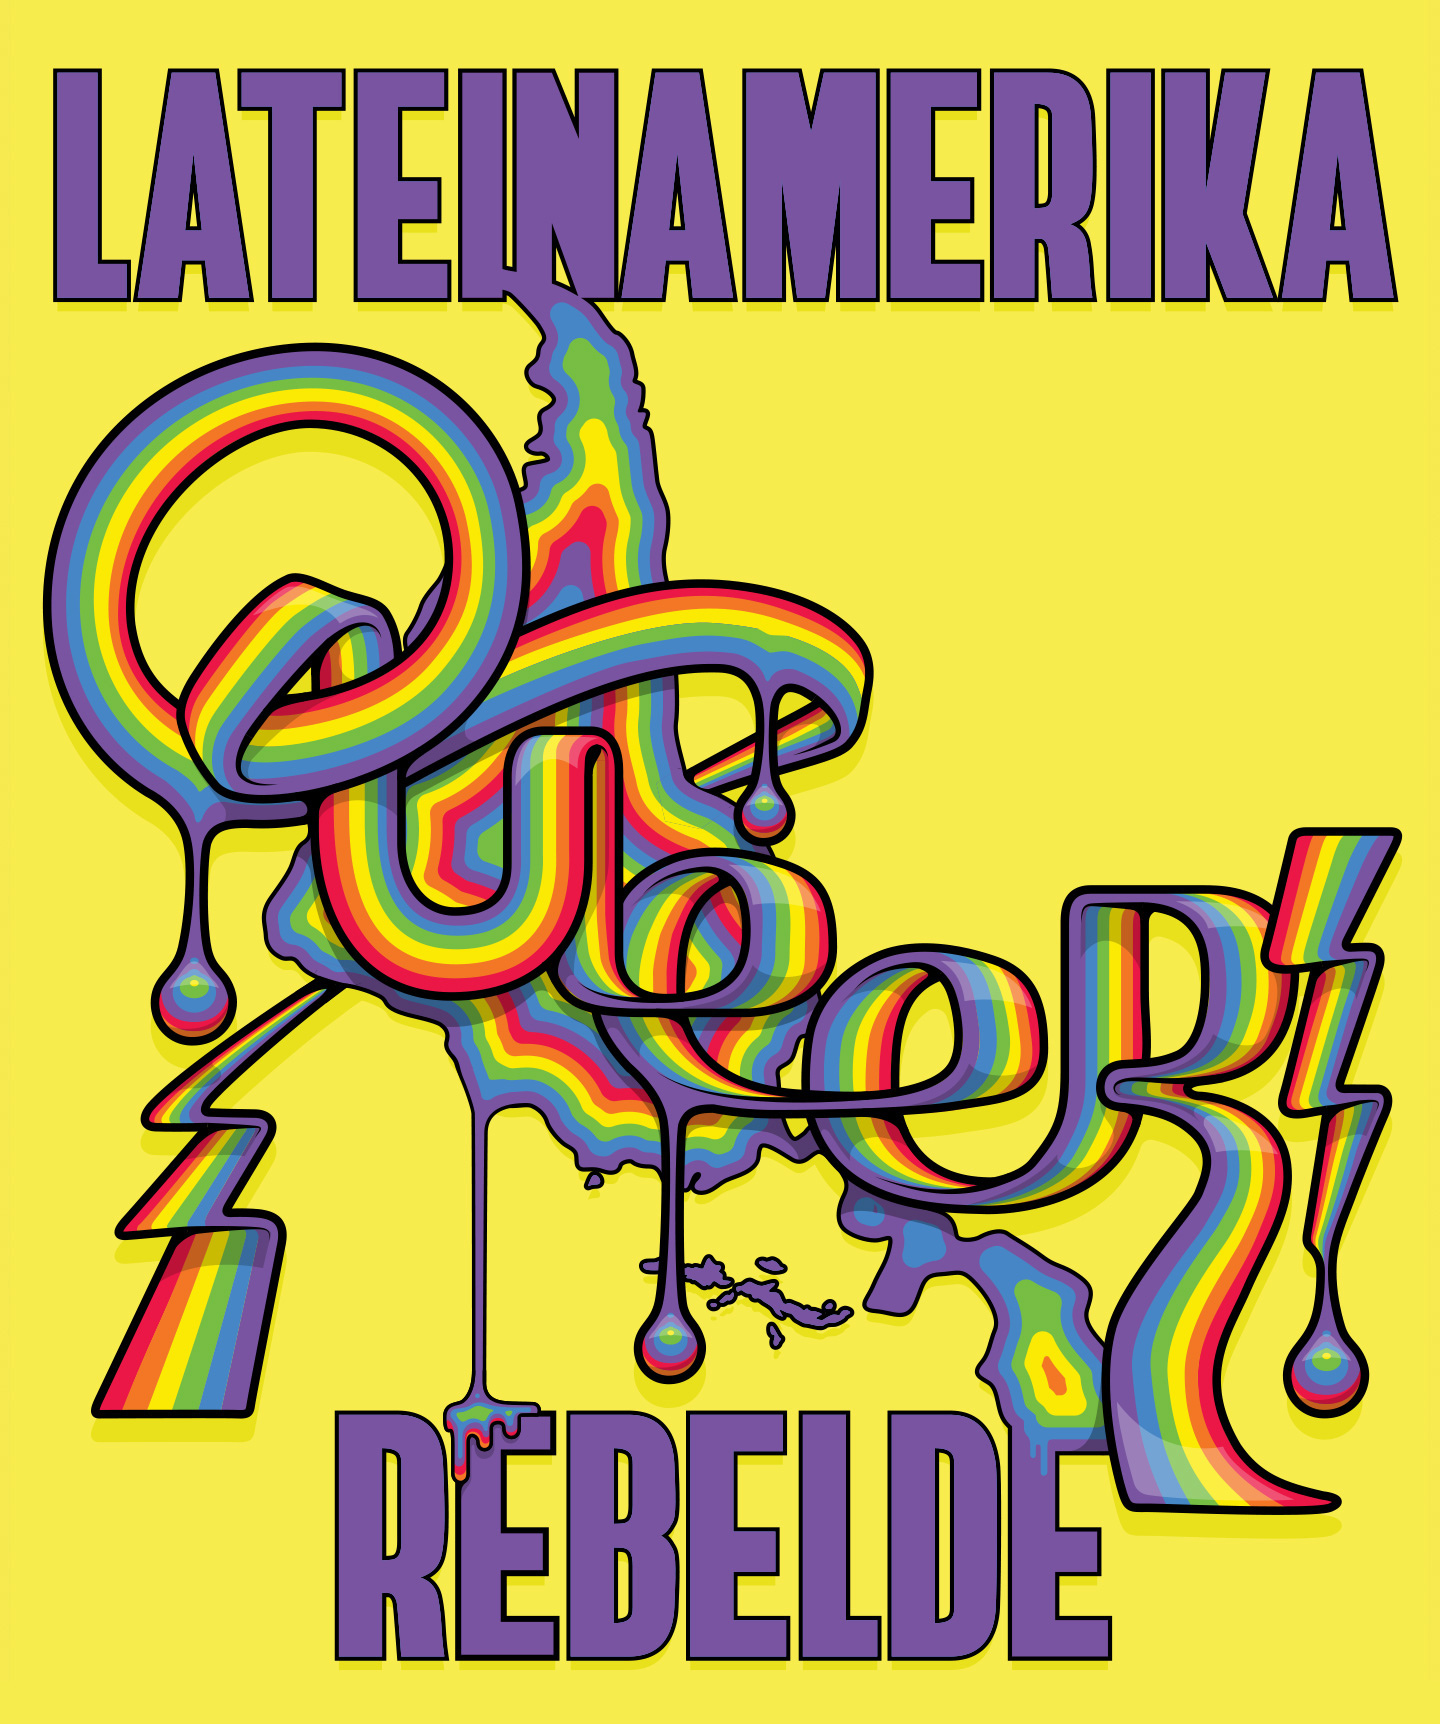 illustration_andre_levy_zhion_vector_pop_queer_type_rainbow_latin_america_dripping_rebelde_1.jpg